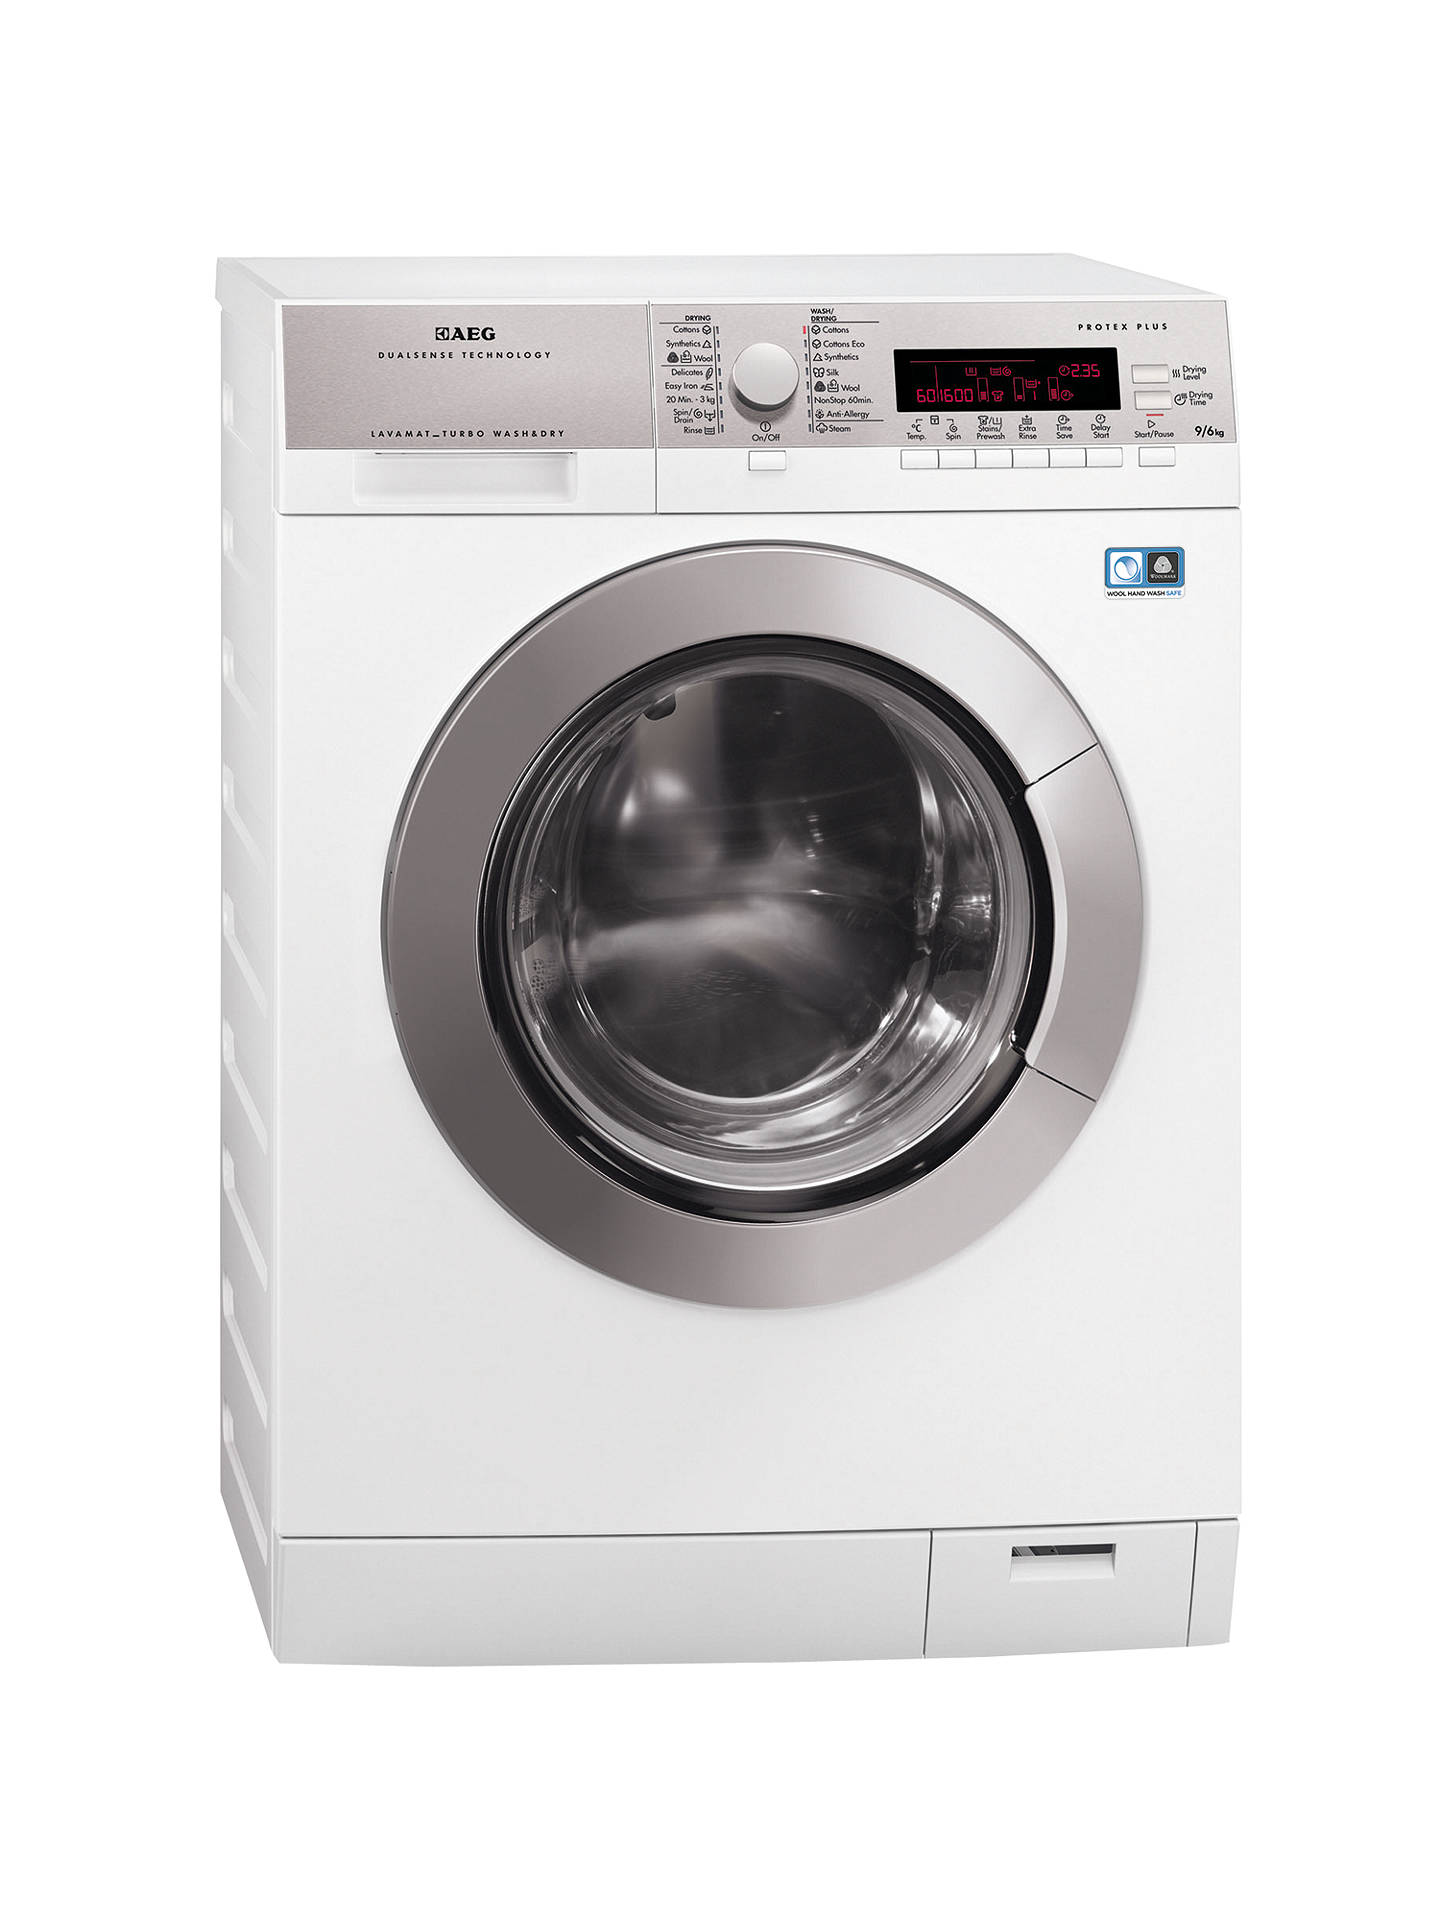 Electrolux washer Owners manual